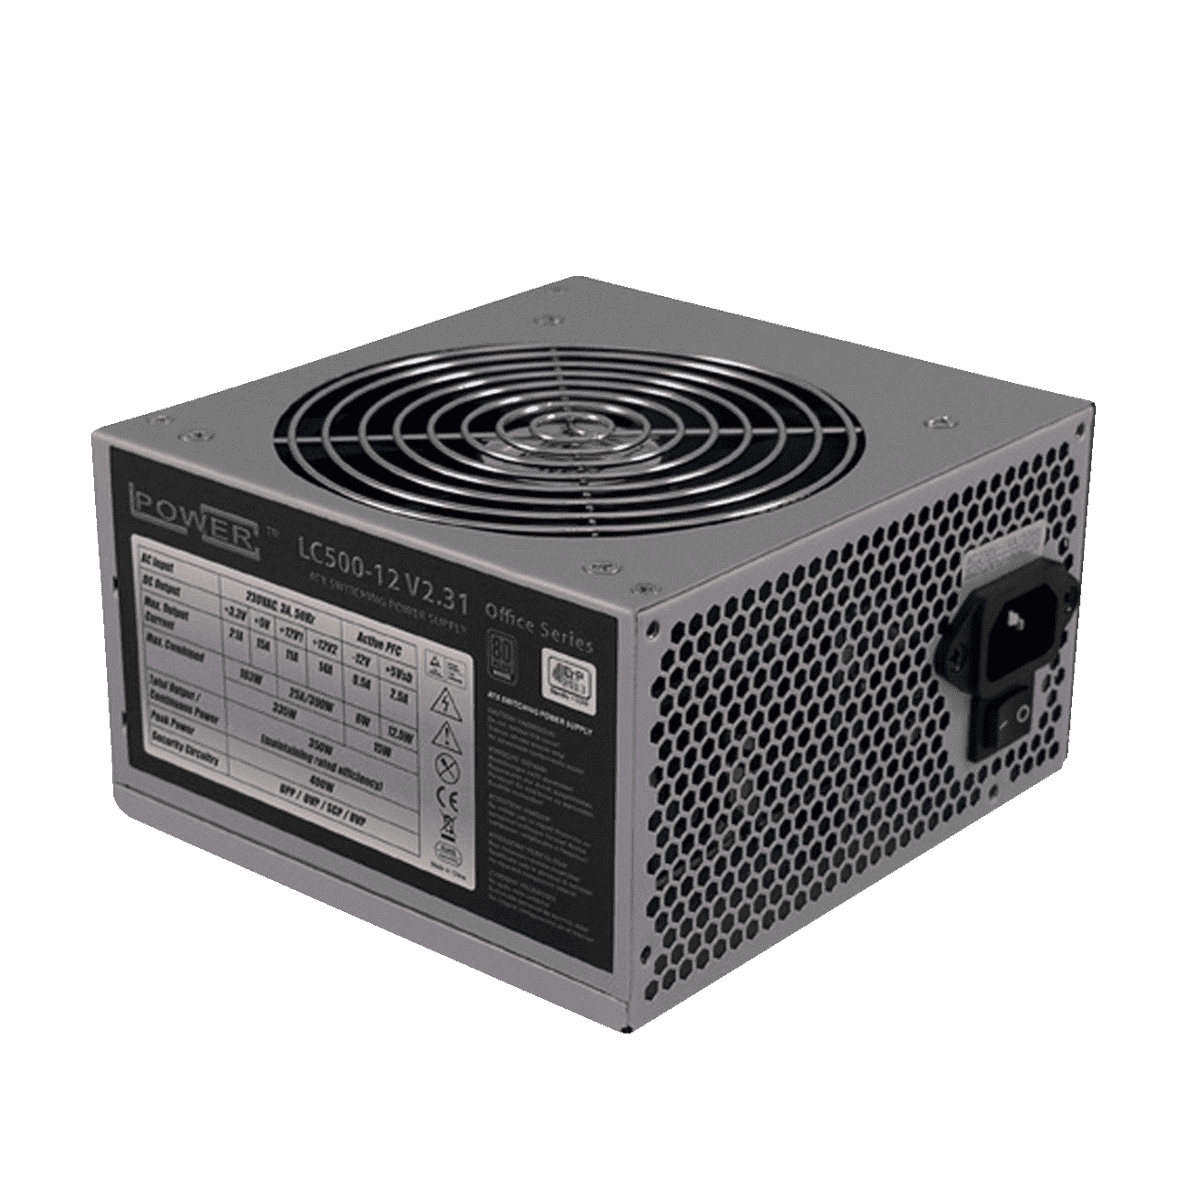 LC-POWER LC500-12 V2.31 - Office Serie PC-Netzteil Silber